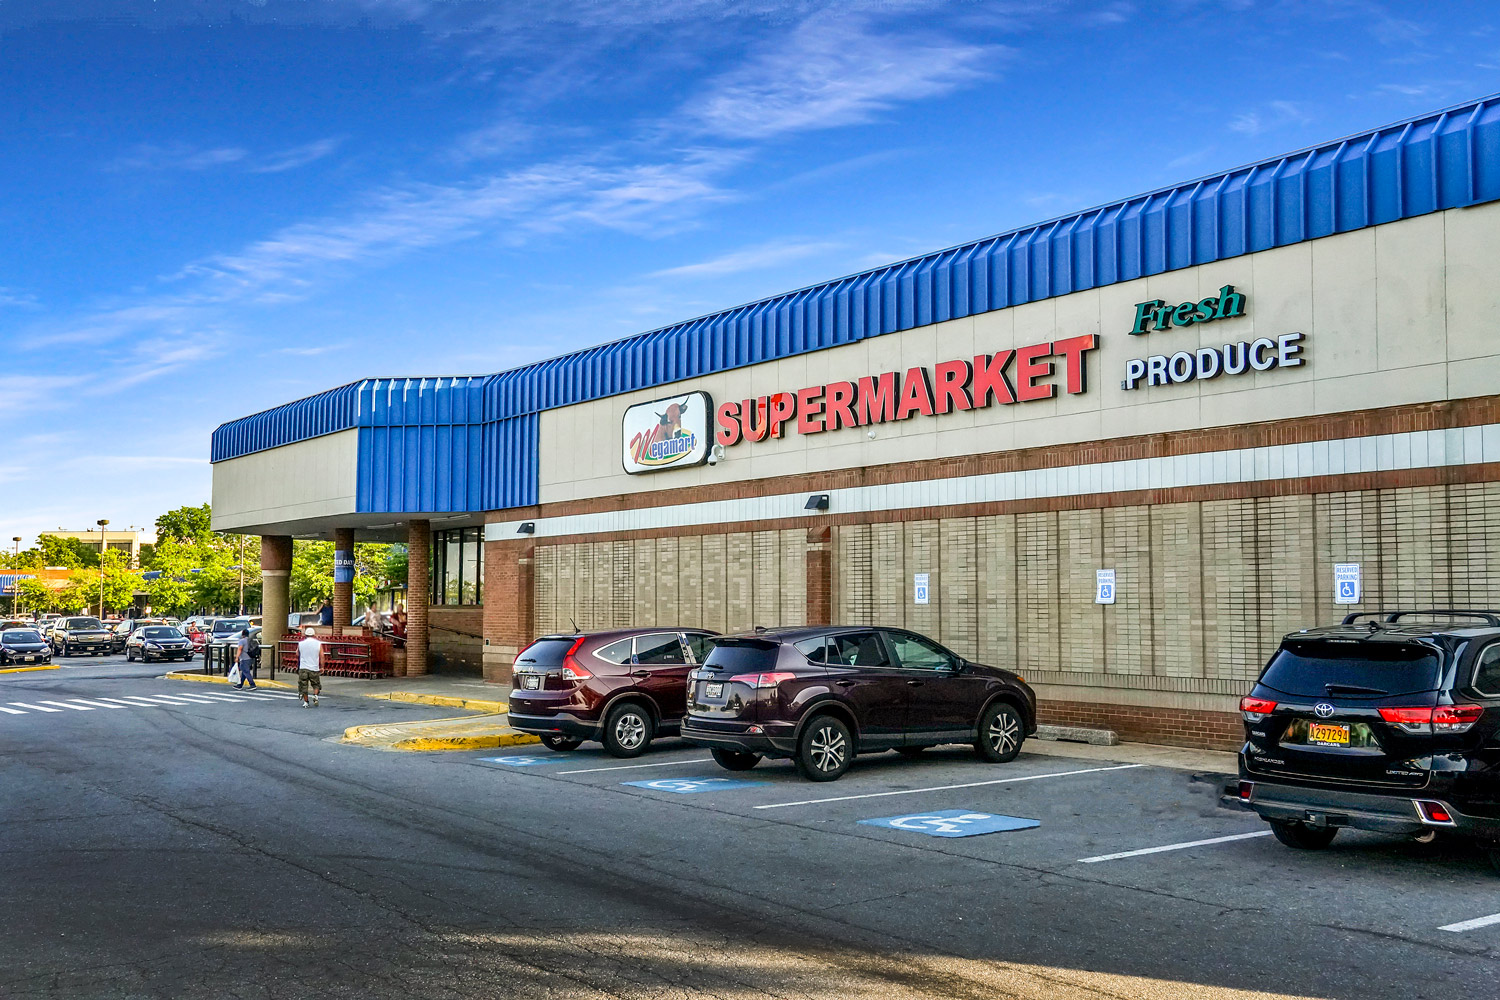 Walking distance to Megamart grocery store  in Langley Park, MD